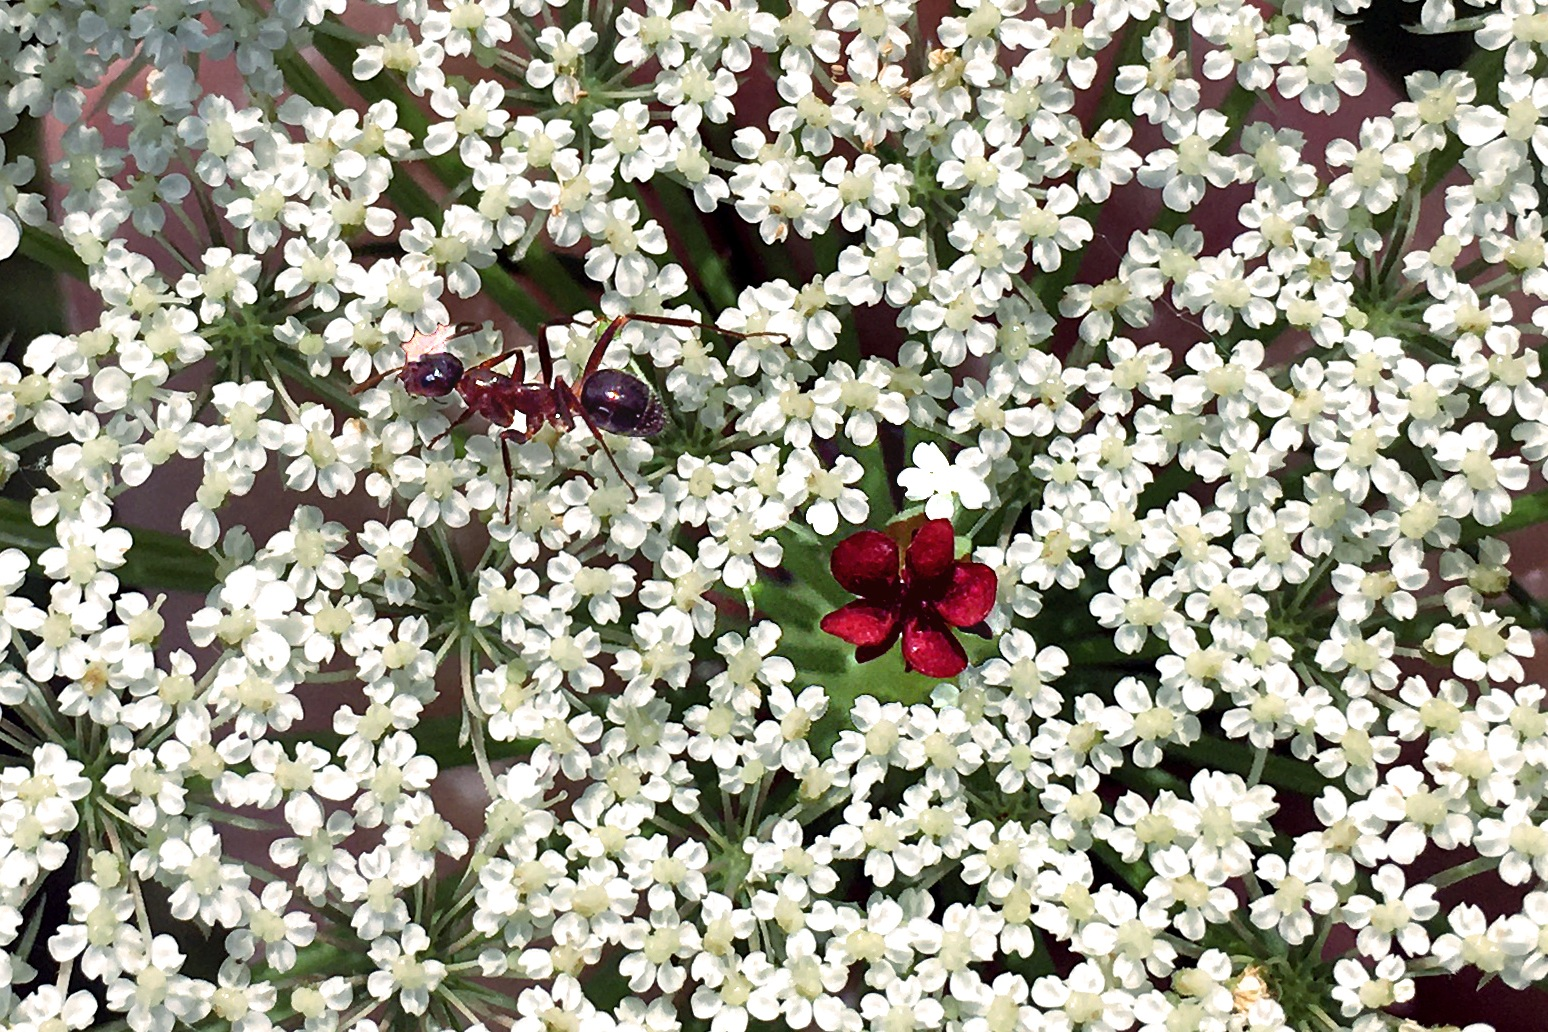 An Ant Rests in a Queen Anne's Lace Bed